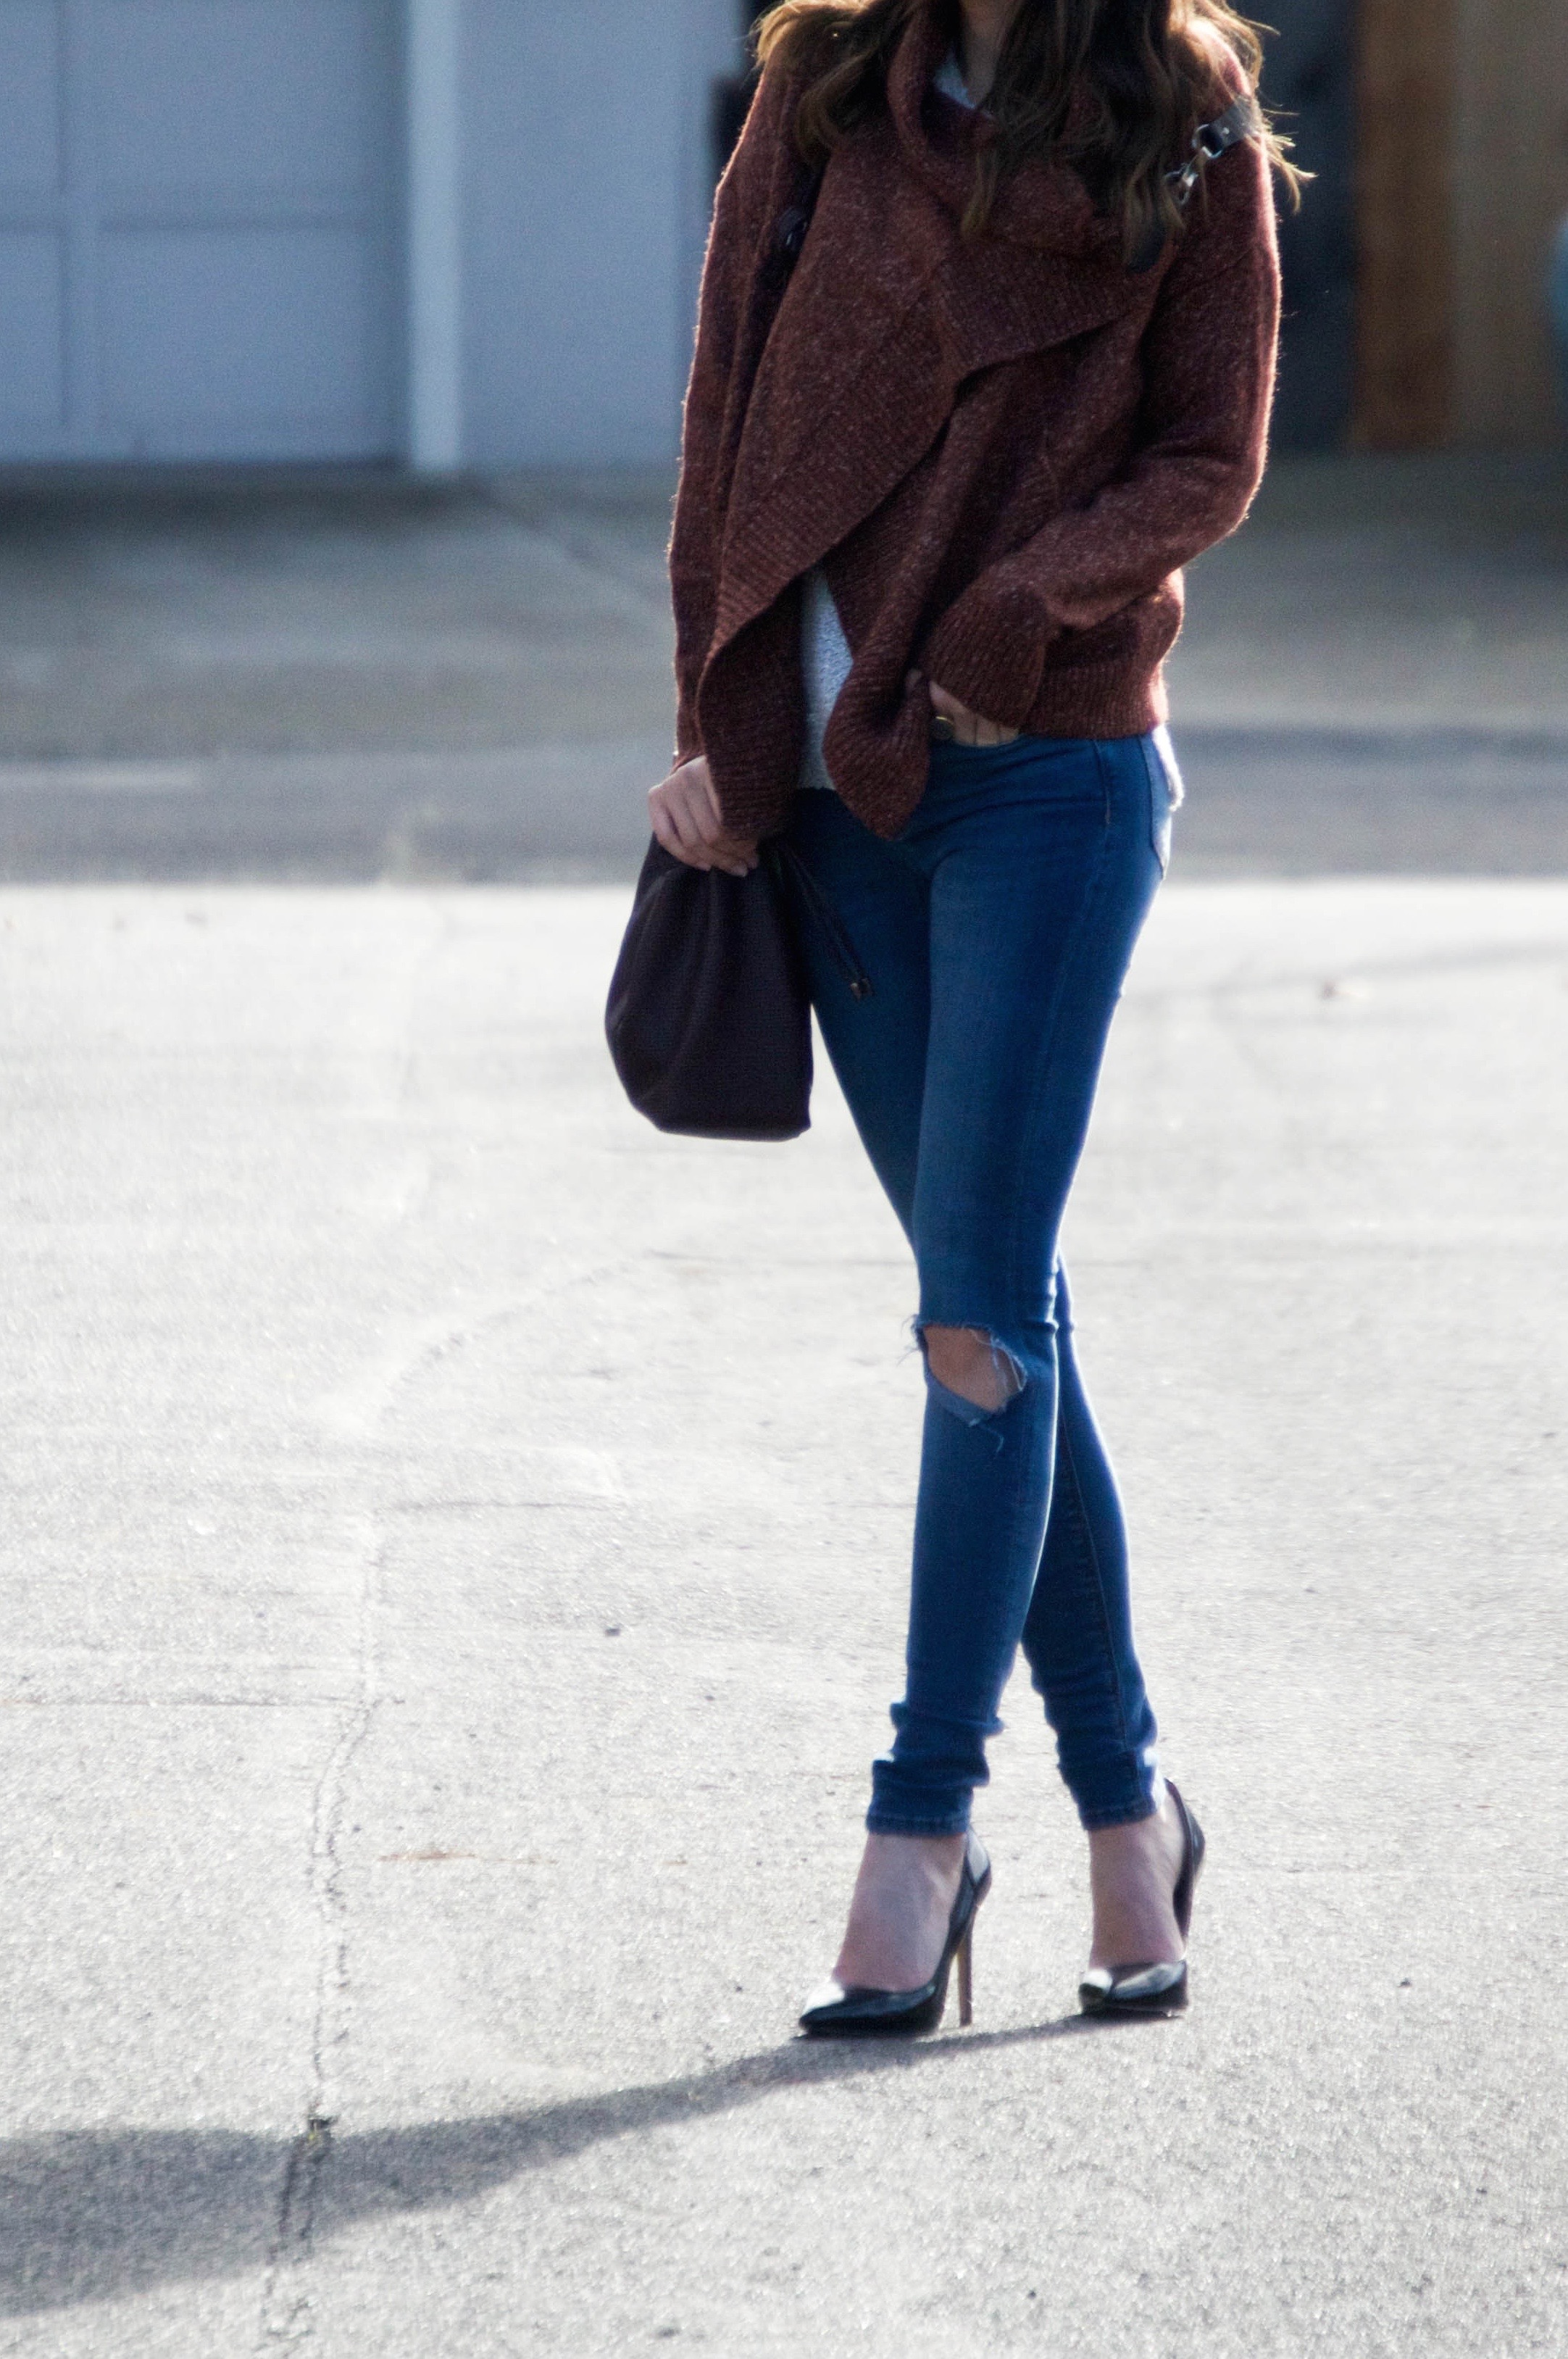 Shop the Look Below: Cardigan:  SheIn . Jeans: Old--similar  here  and  here. ) Shoes:  Steve Madden . Bag: c/o  Deux Lux . Sunglasses:  Ray-Ban . Ring: c/o  BaubleBar